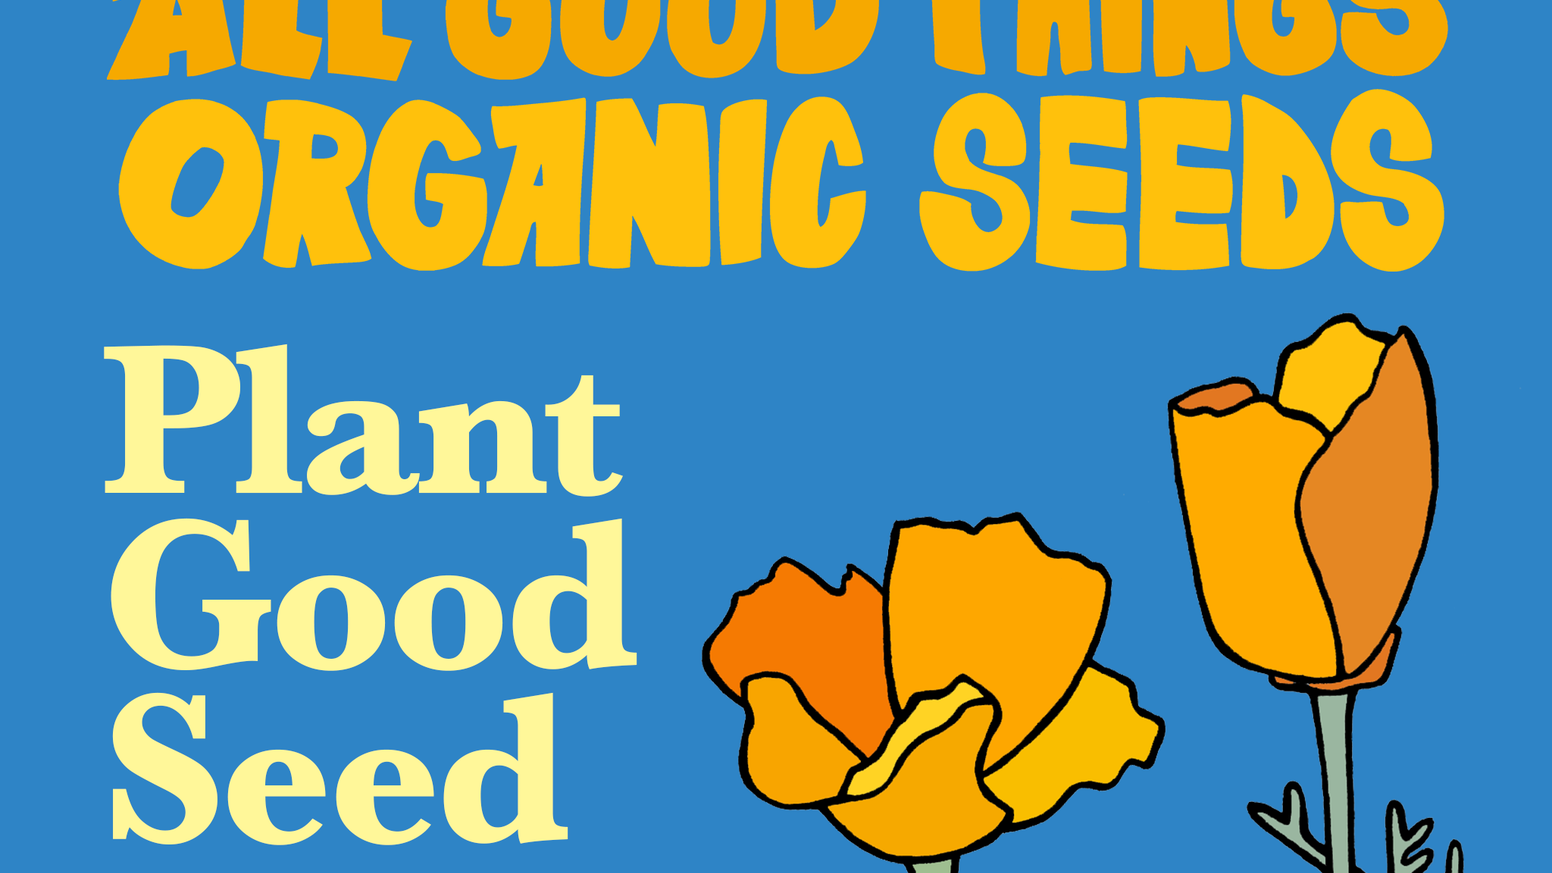 Plant Good Seed: Invest In Your Future With Our Seed Company